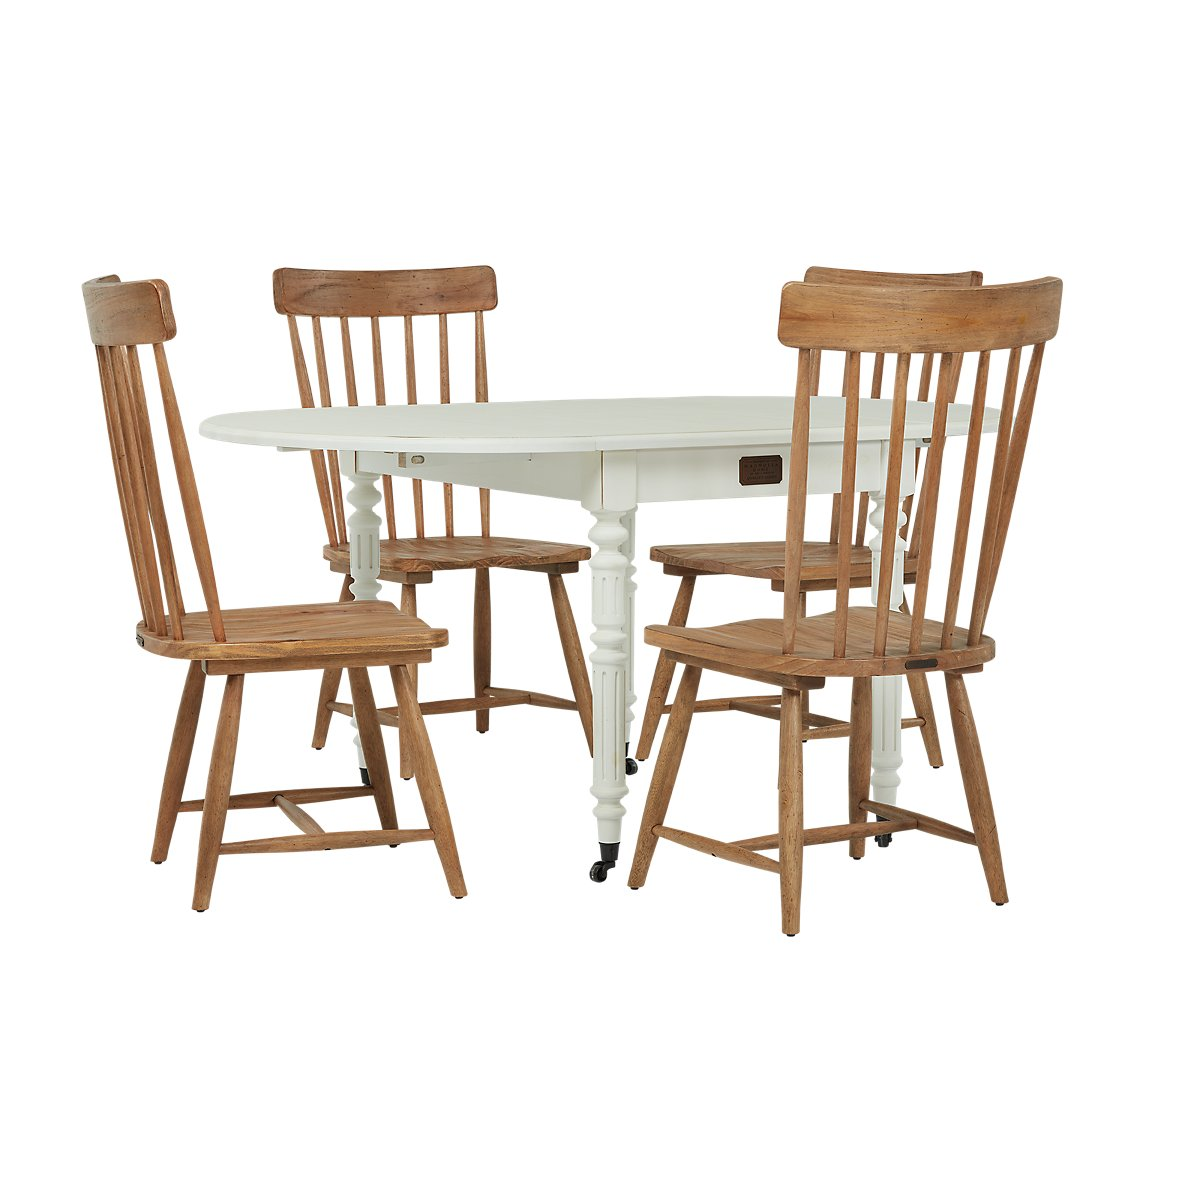 and at wood furniture f reclaimed seating for chairs vintage usa chair x id teak sale armchairs